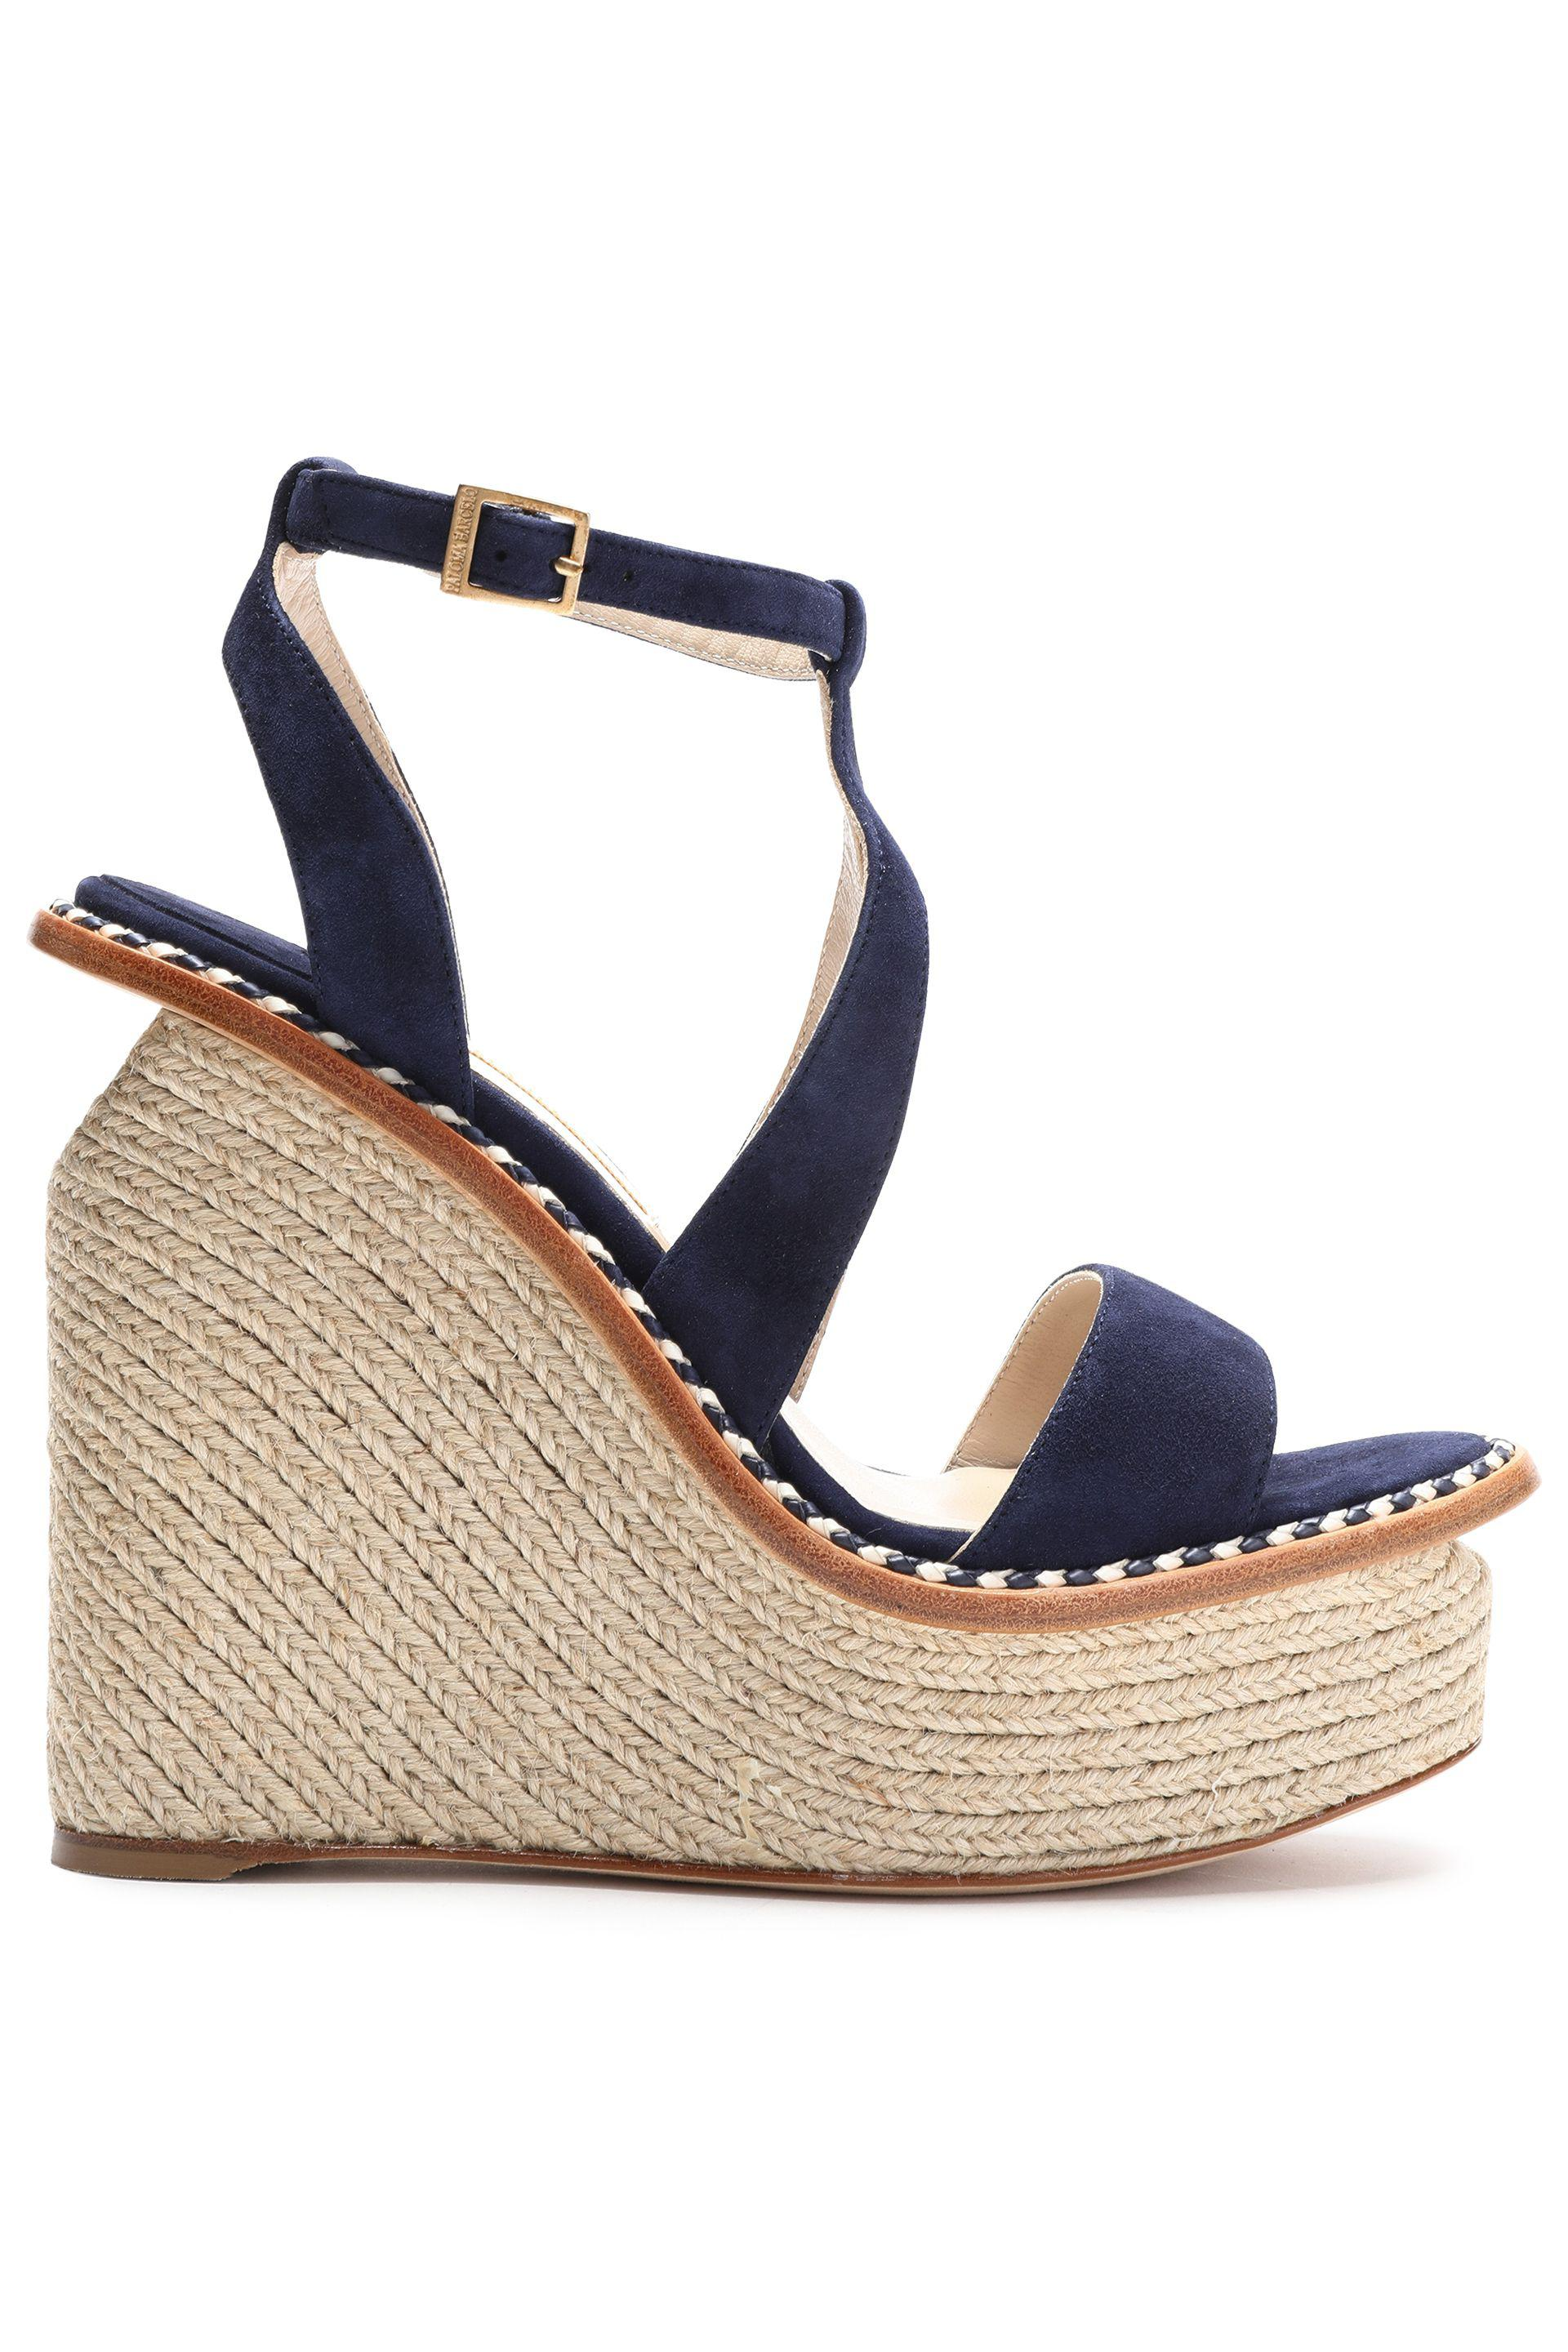 b5a35a2e462 Paloma Barceló Braided Leather-trimmed Suede Platform Wedge Sandals ...